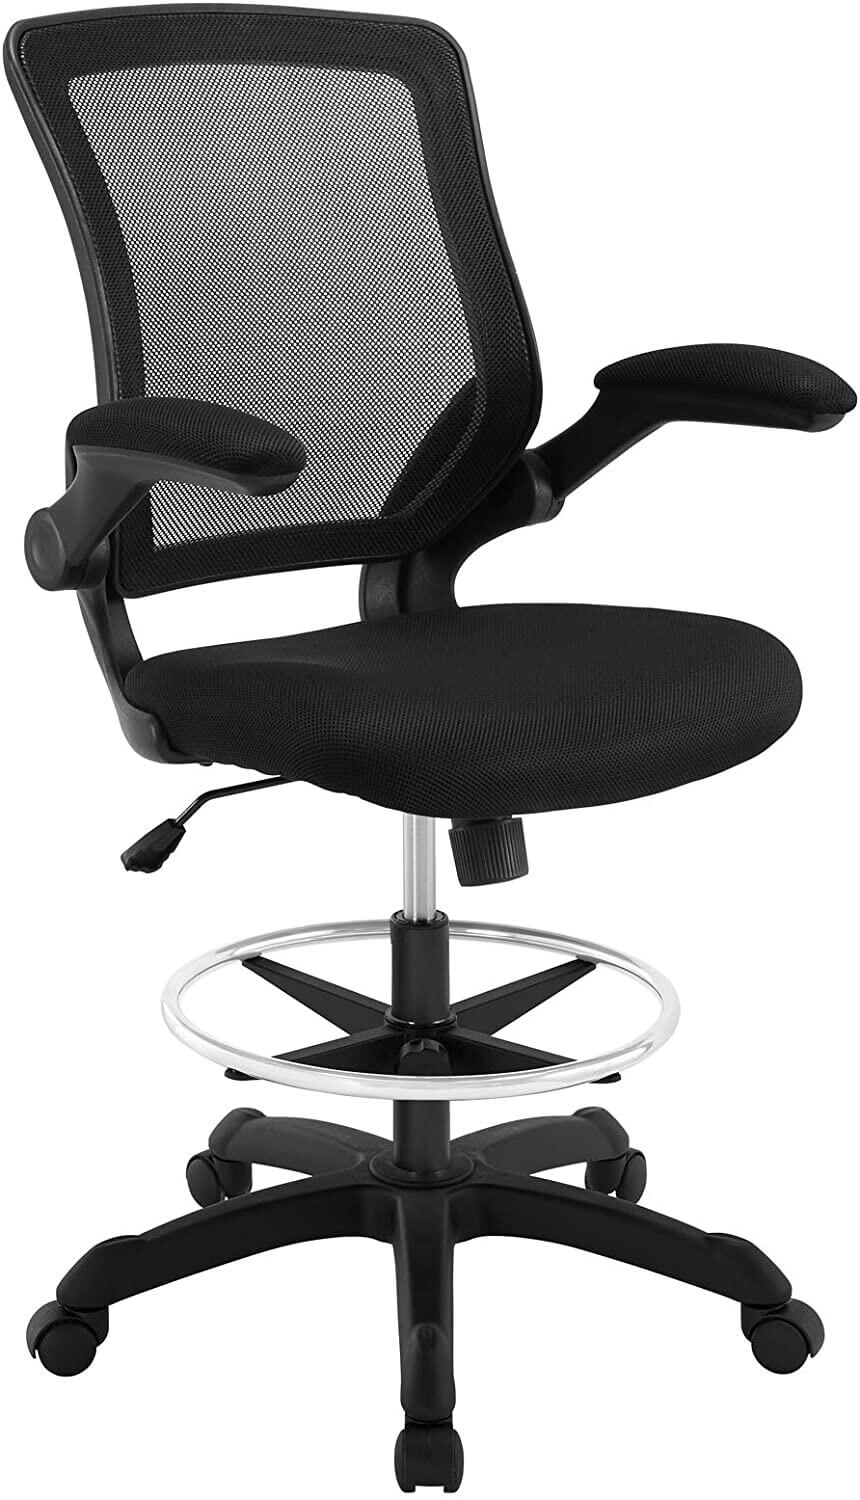 Modway-Veer-Drafting-Stool-Chair